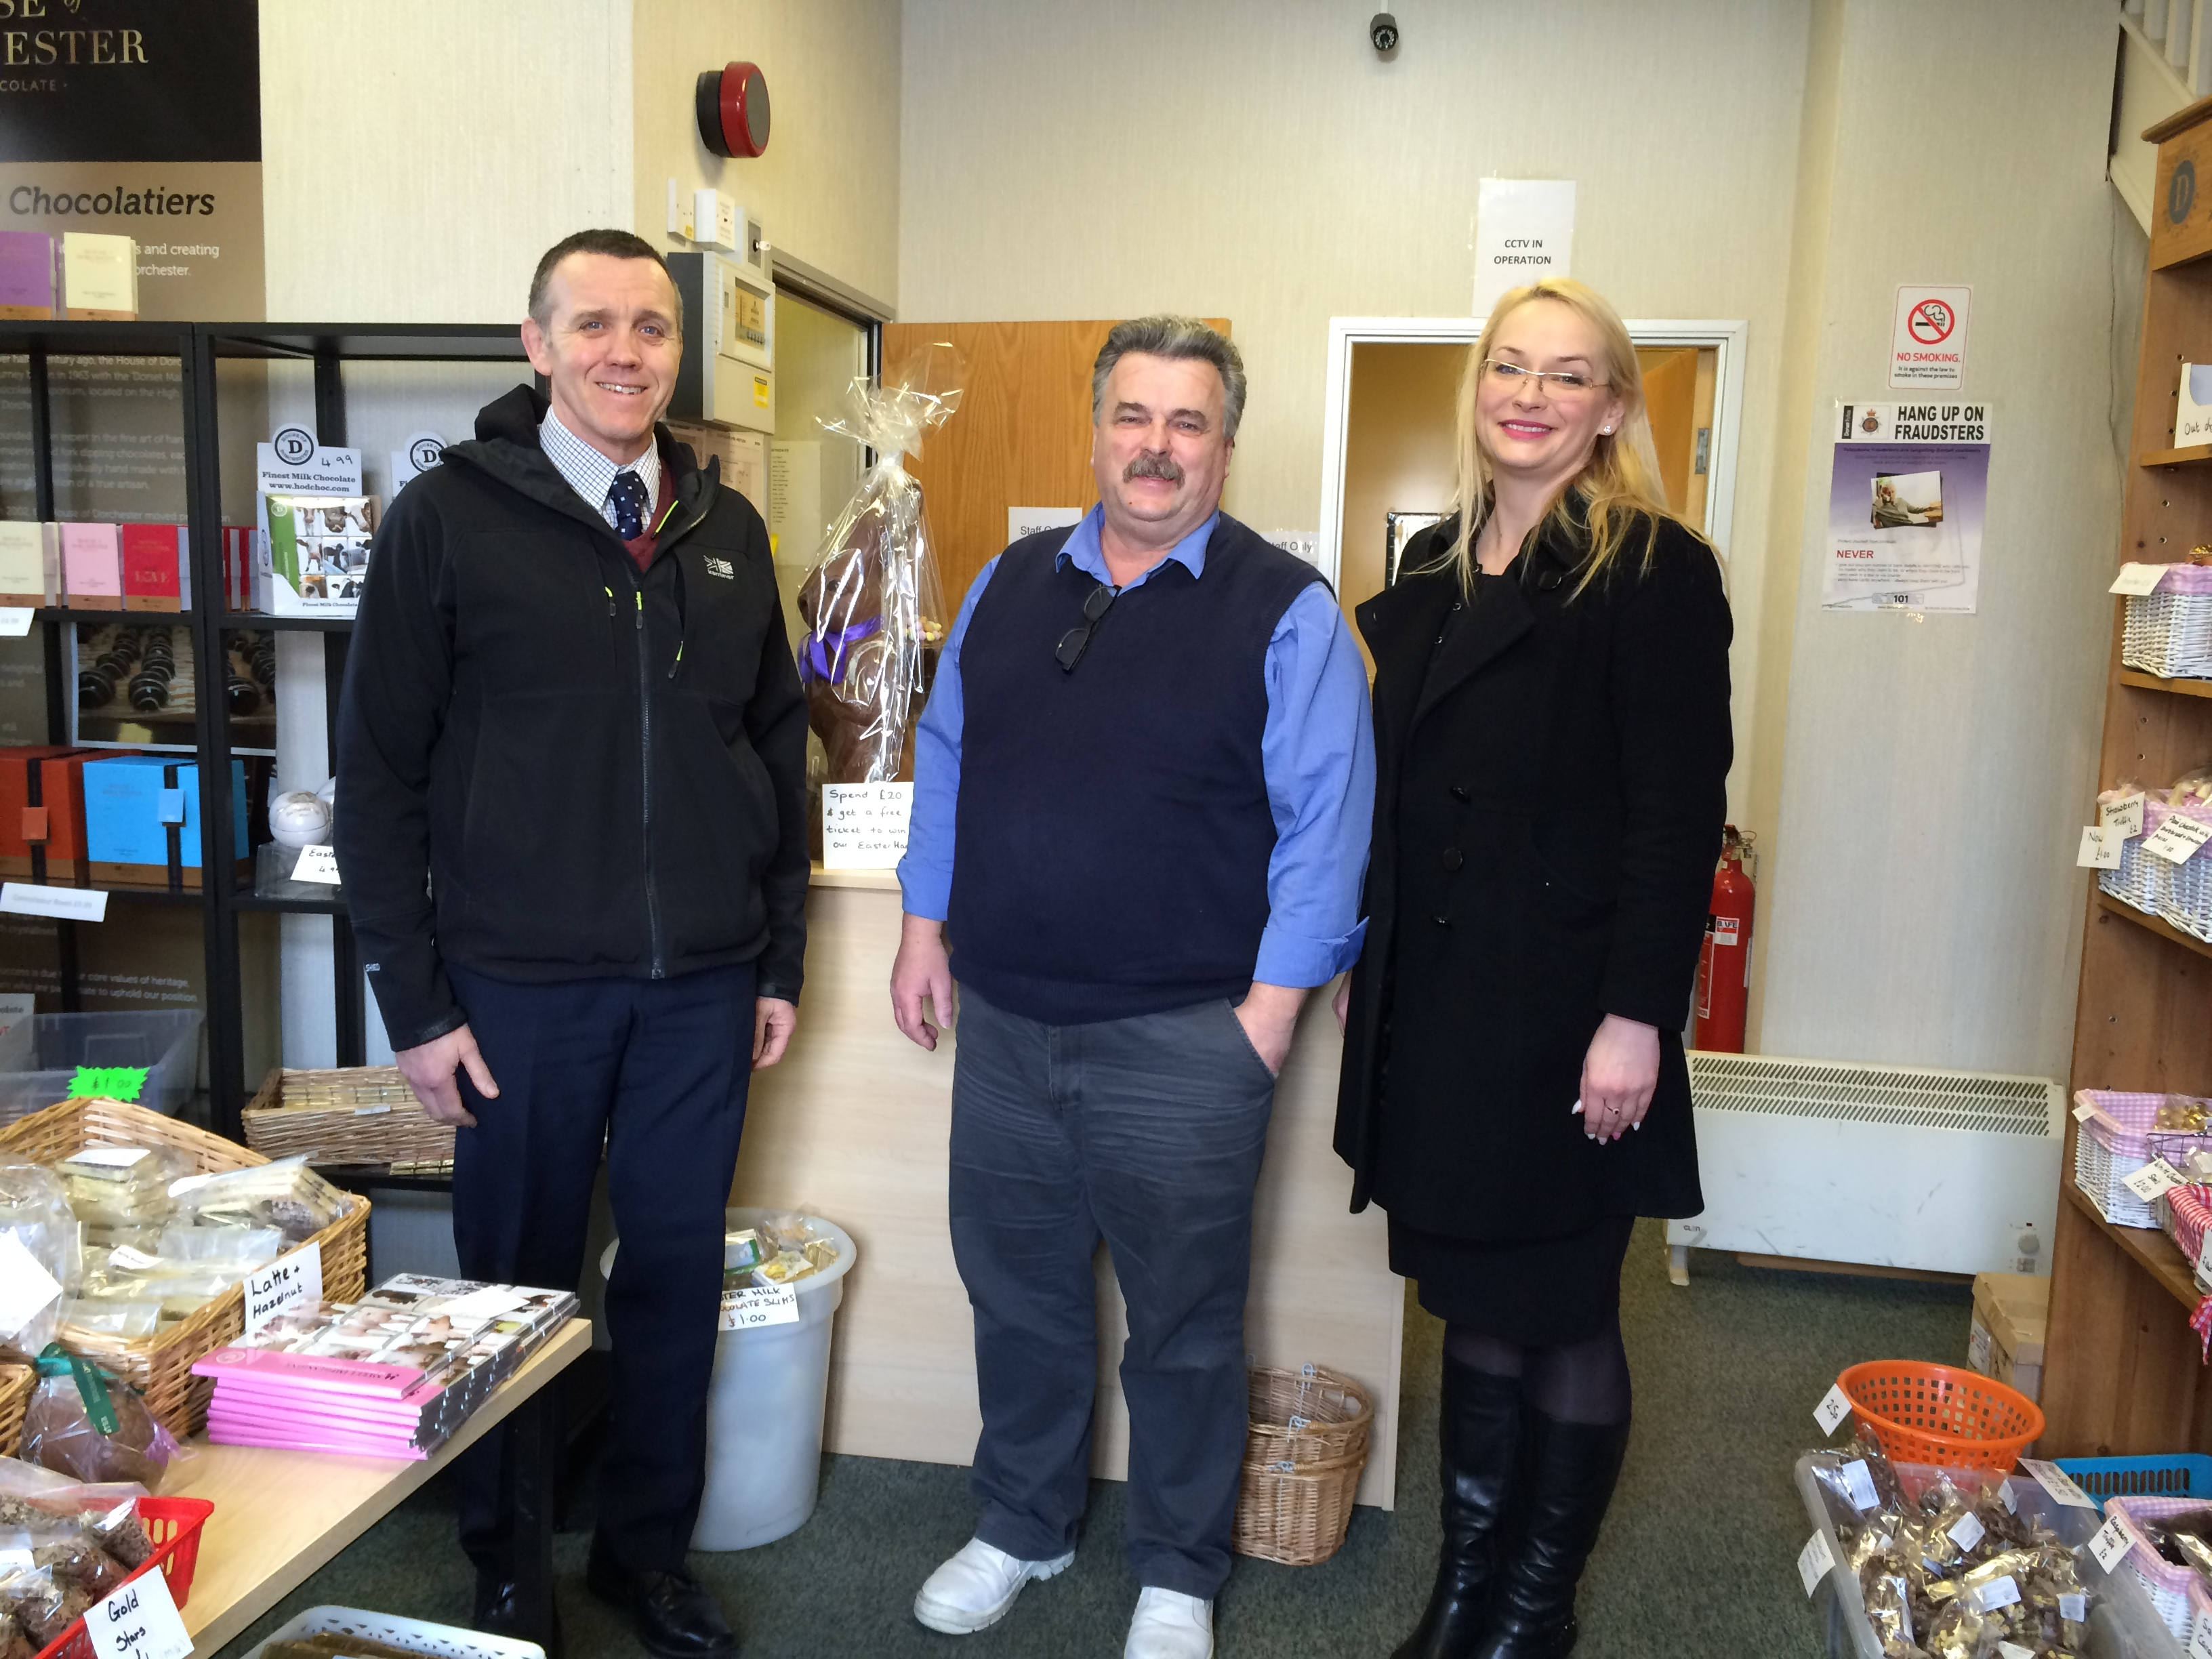 Mploy Dorchester renew contract with House of Dorchester